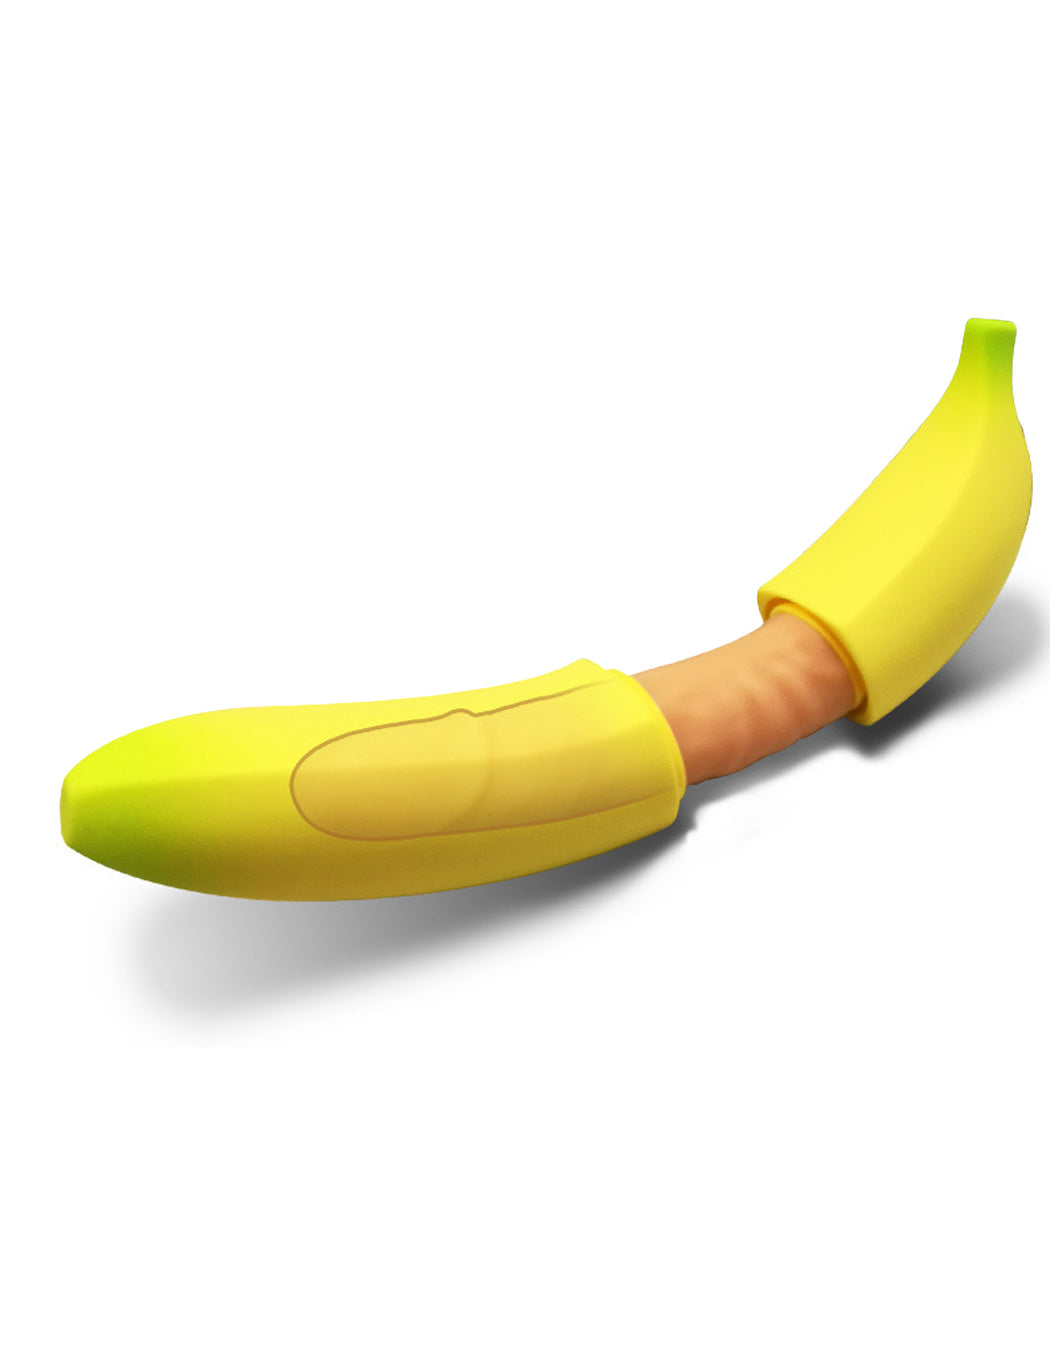 Mr. Banana Dildo Vibrator